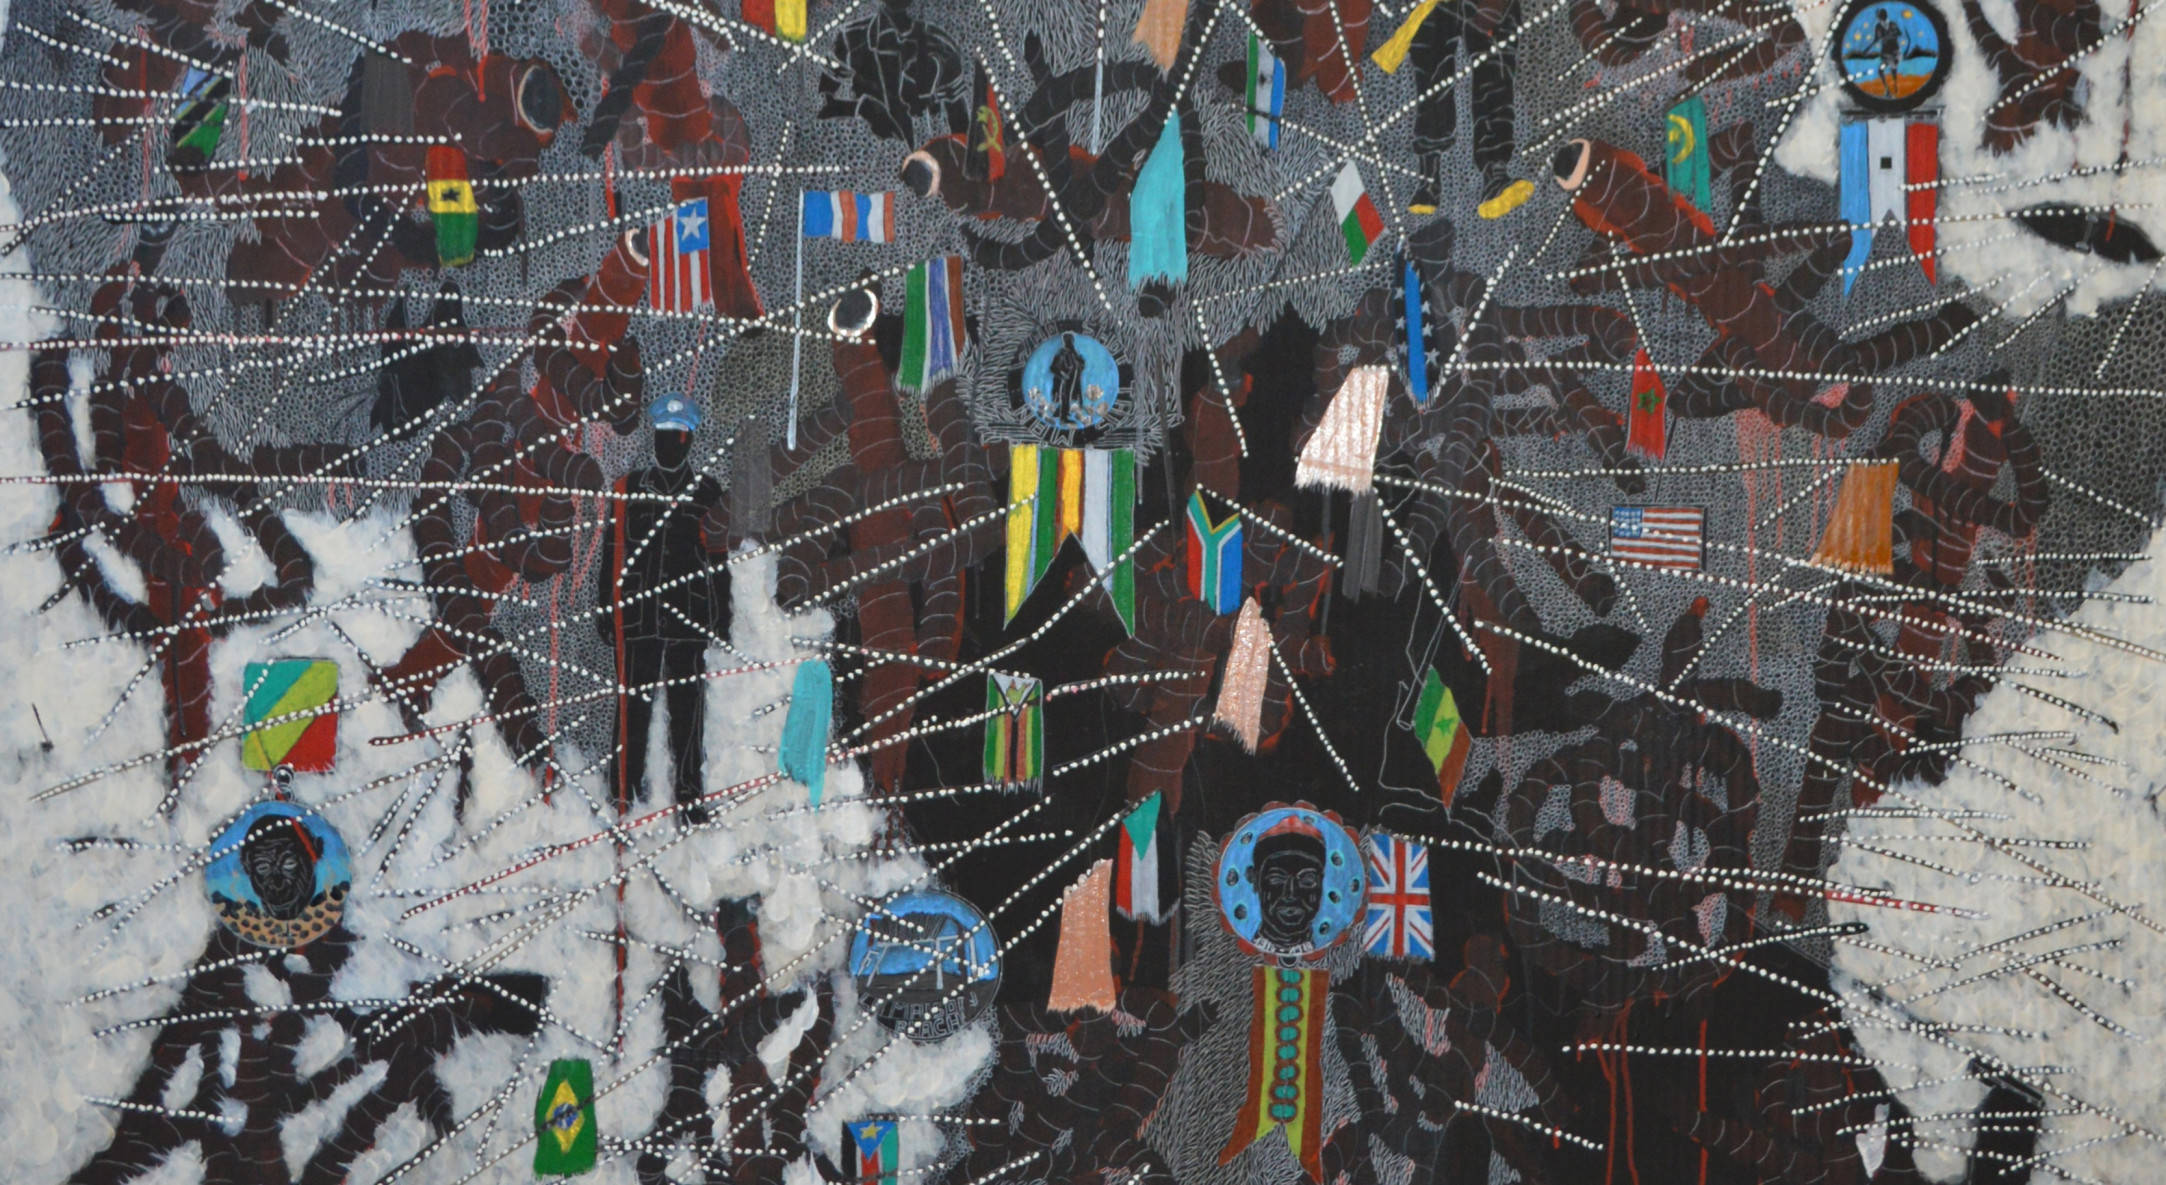 Detail of Omar Ba, Here Africa, 2015, oil, acrylic and crayons on cardboard, 200 x 130 cm